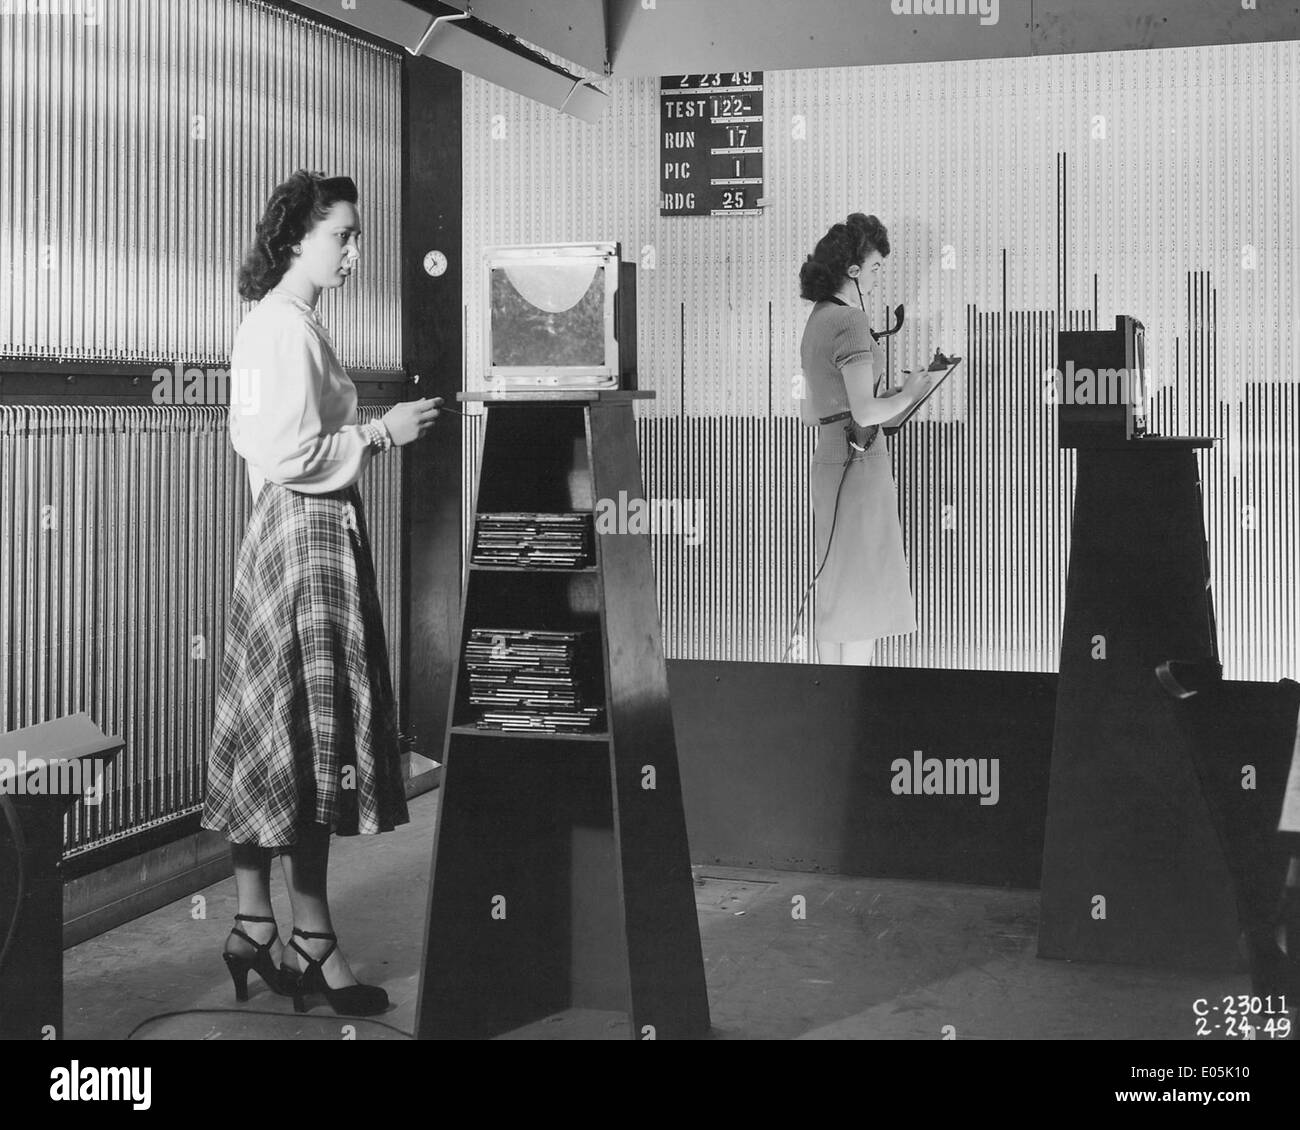 Manometer Board Setup in Supersonic Wind Tunnel - Stock Image